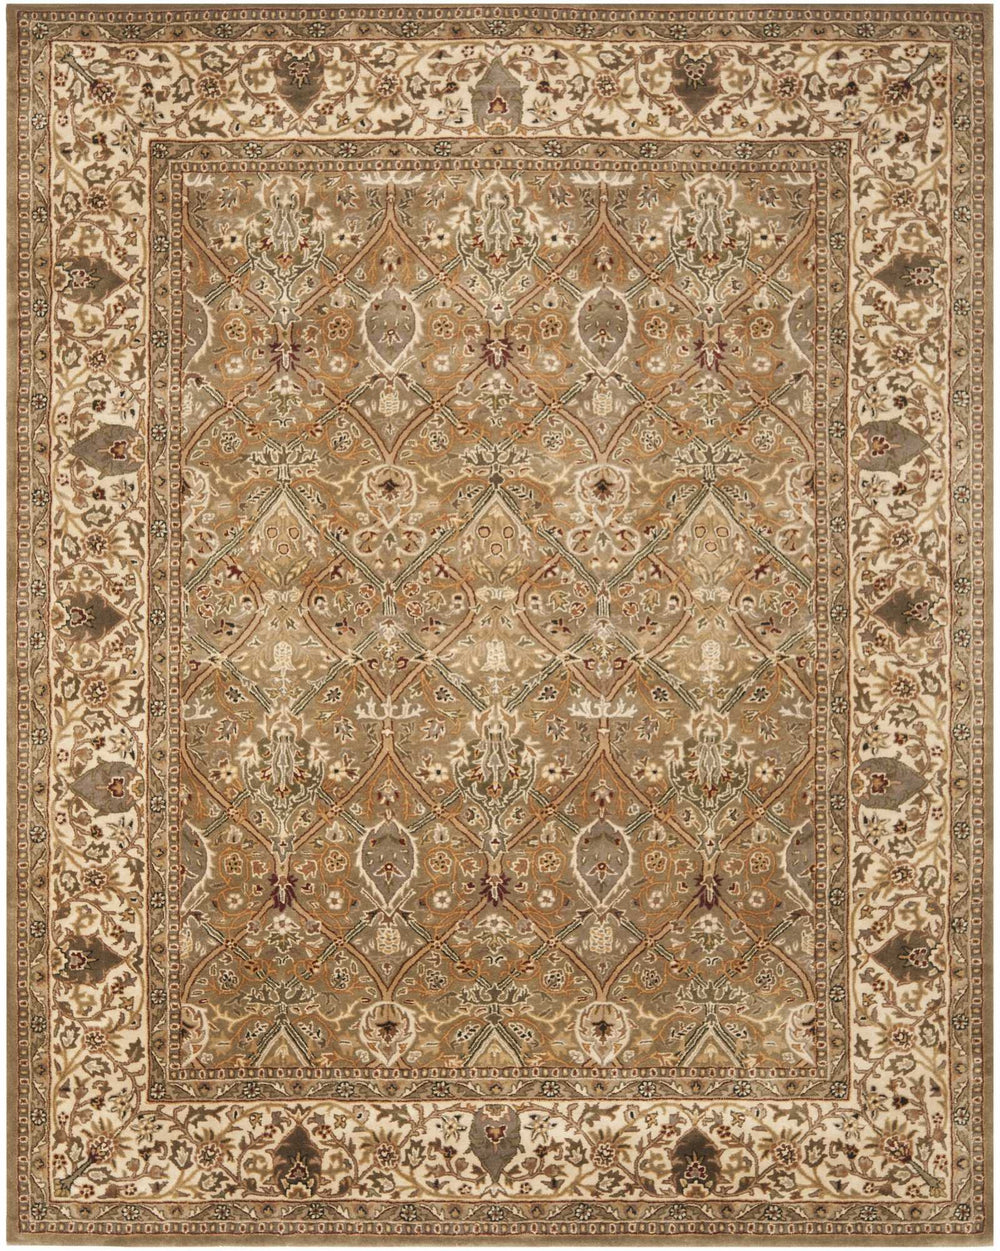 Safavieh Persian Legend PL519 Area Rug